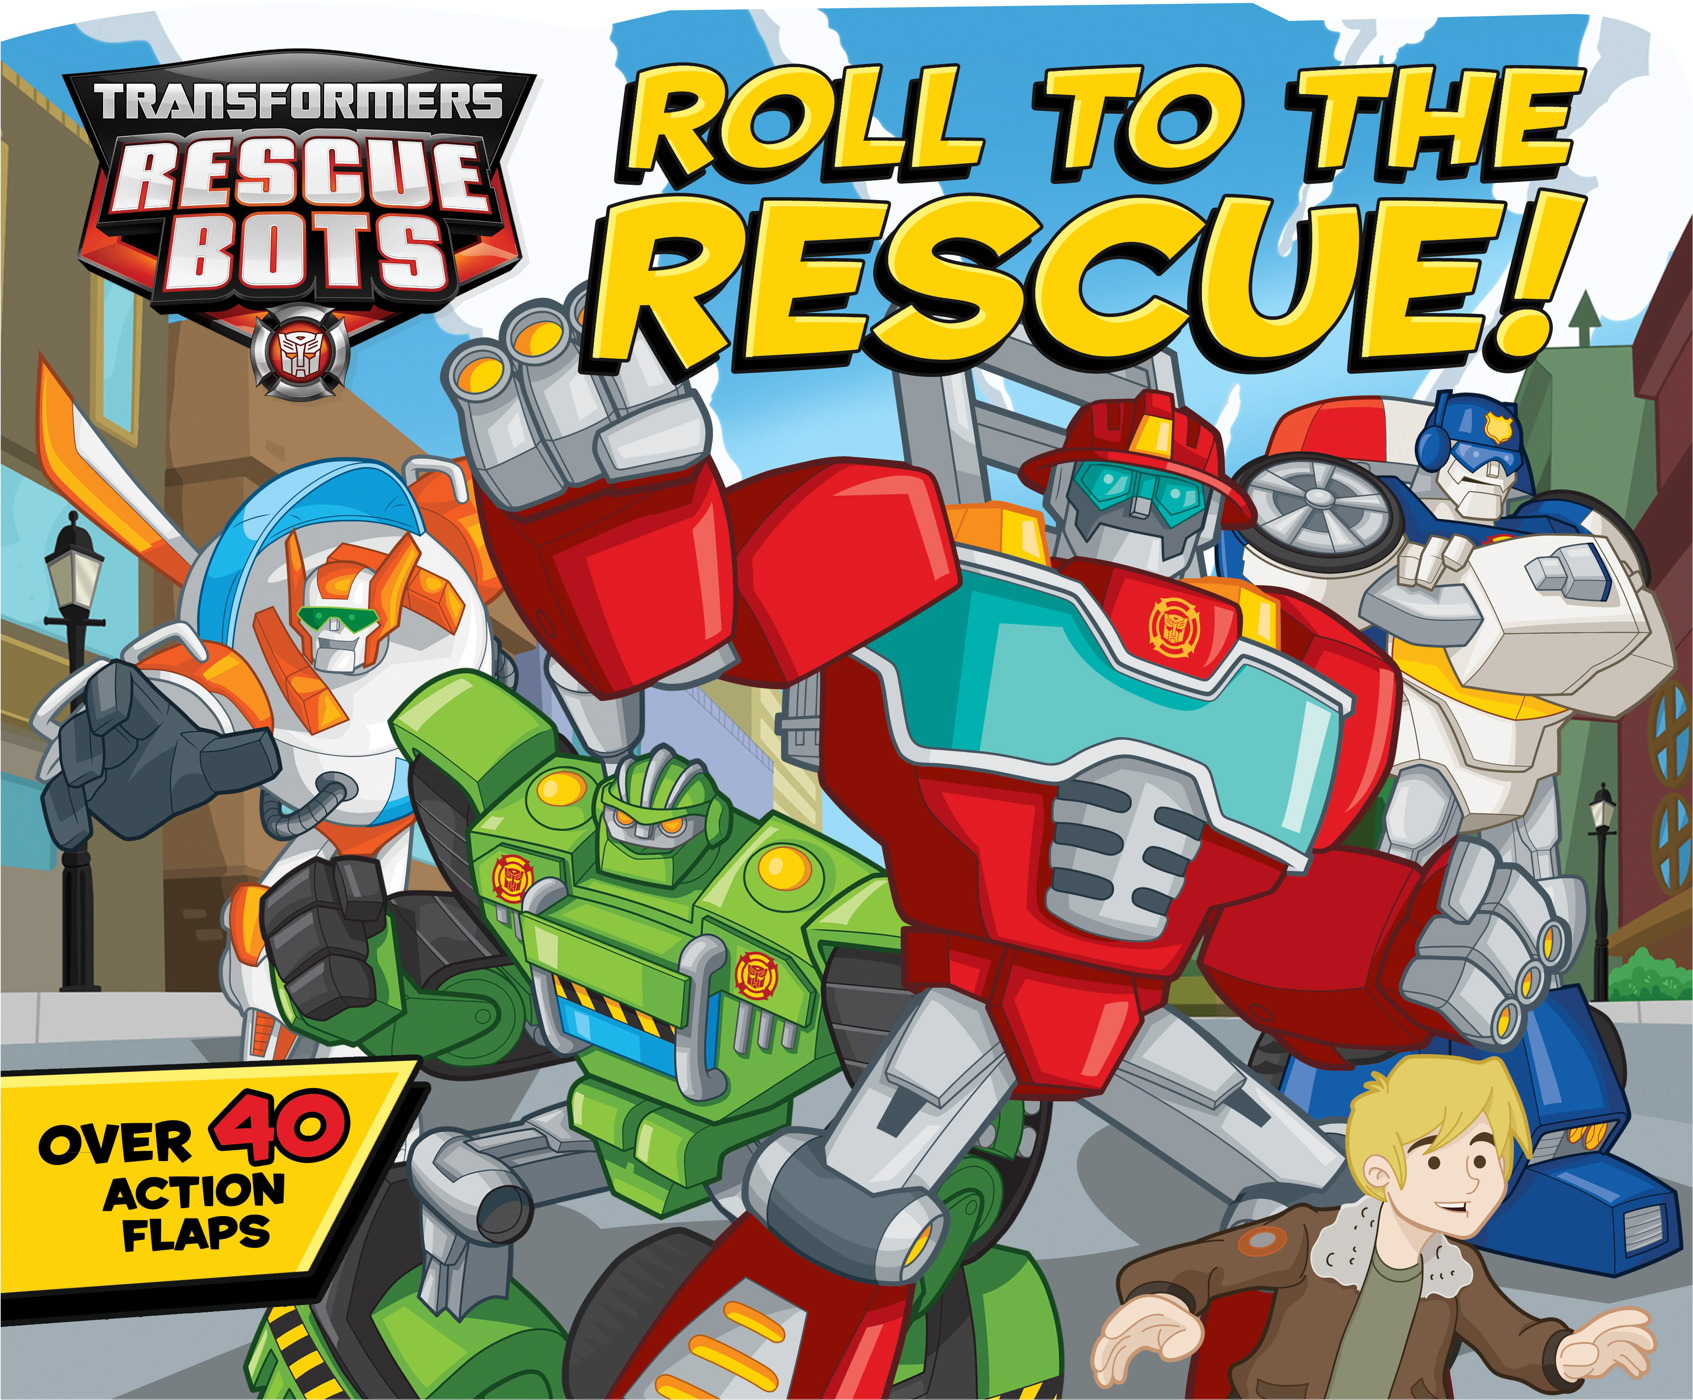 Transformers rescue bots roll to the rescue 9780794428495 hr